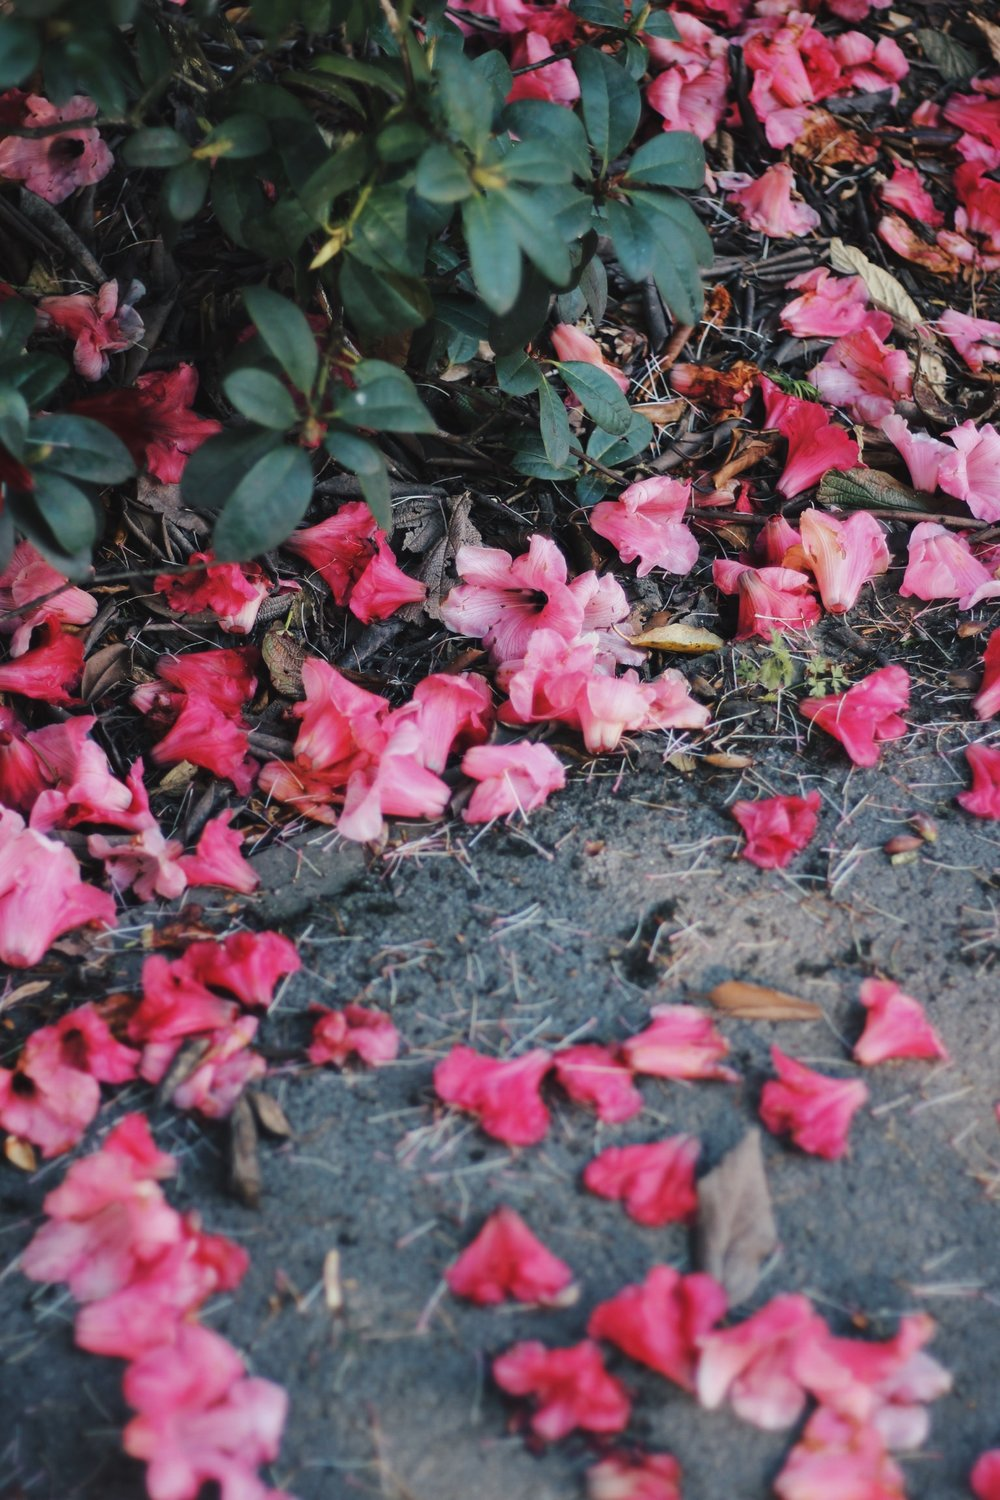 pink flowers on the ground